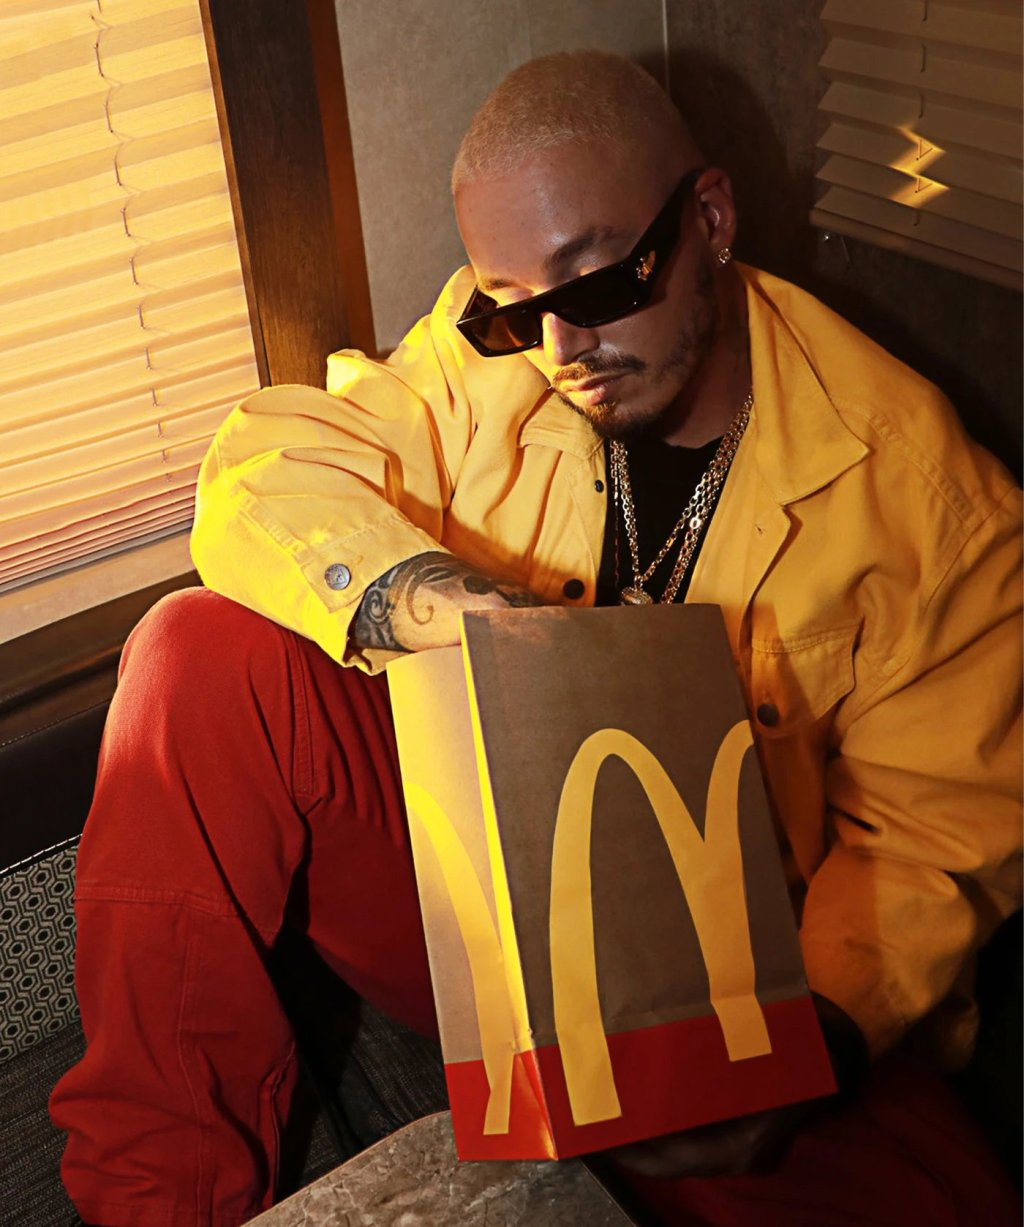 J Balvin Is Getting His Own McDonald's Meal, Too